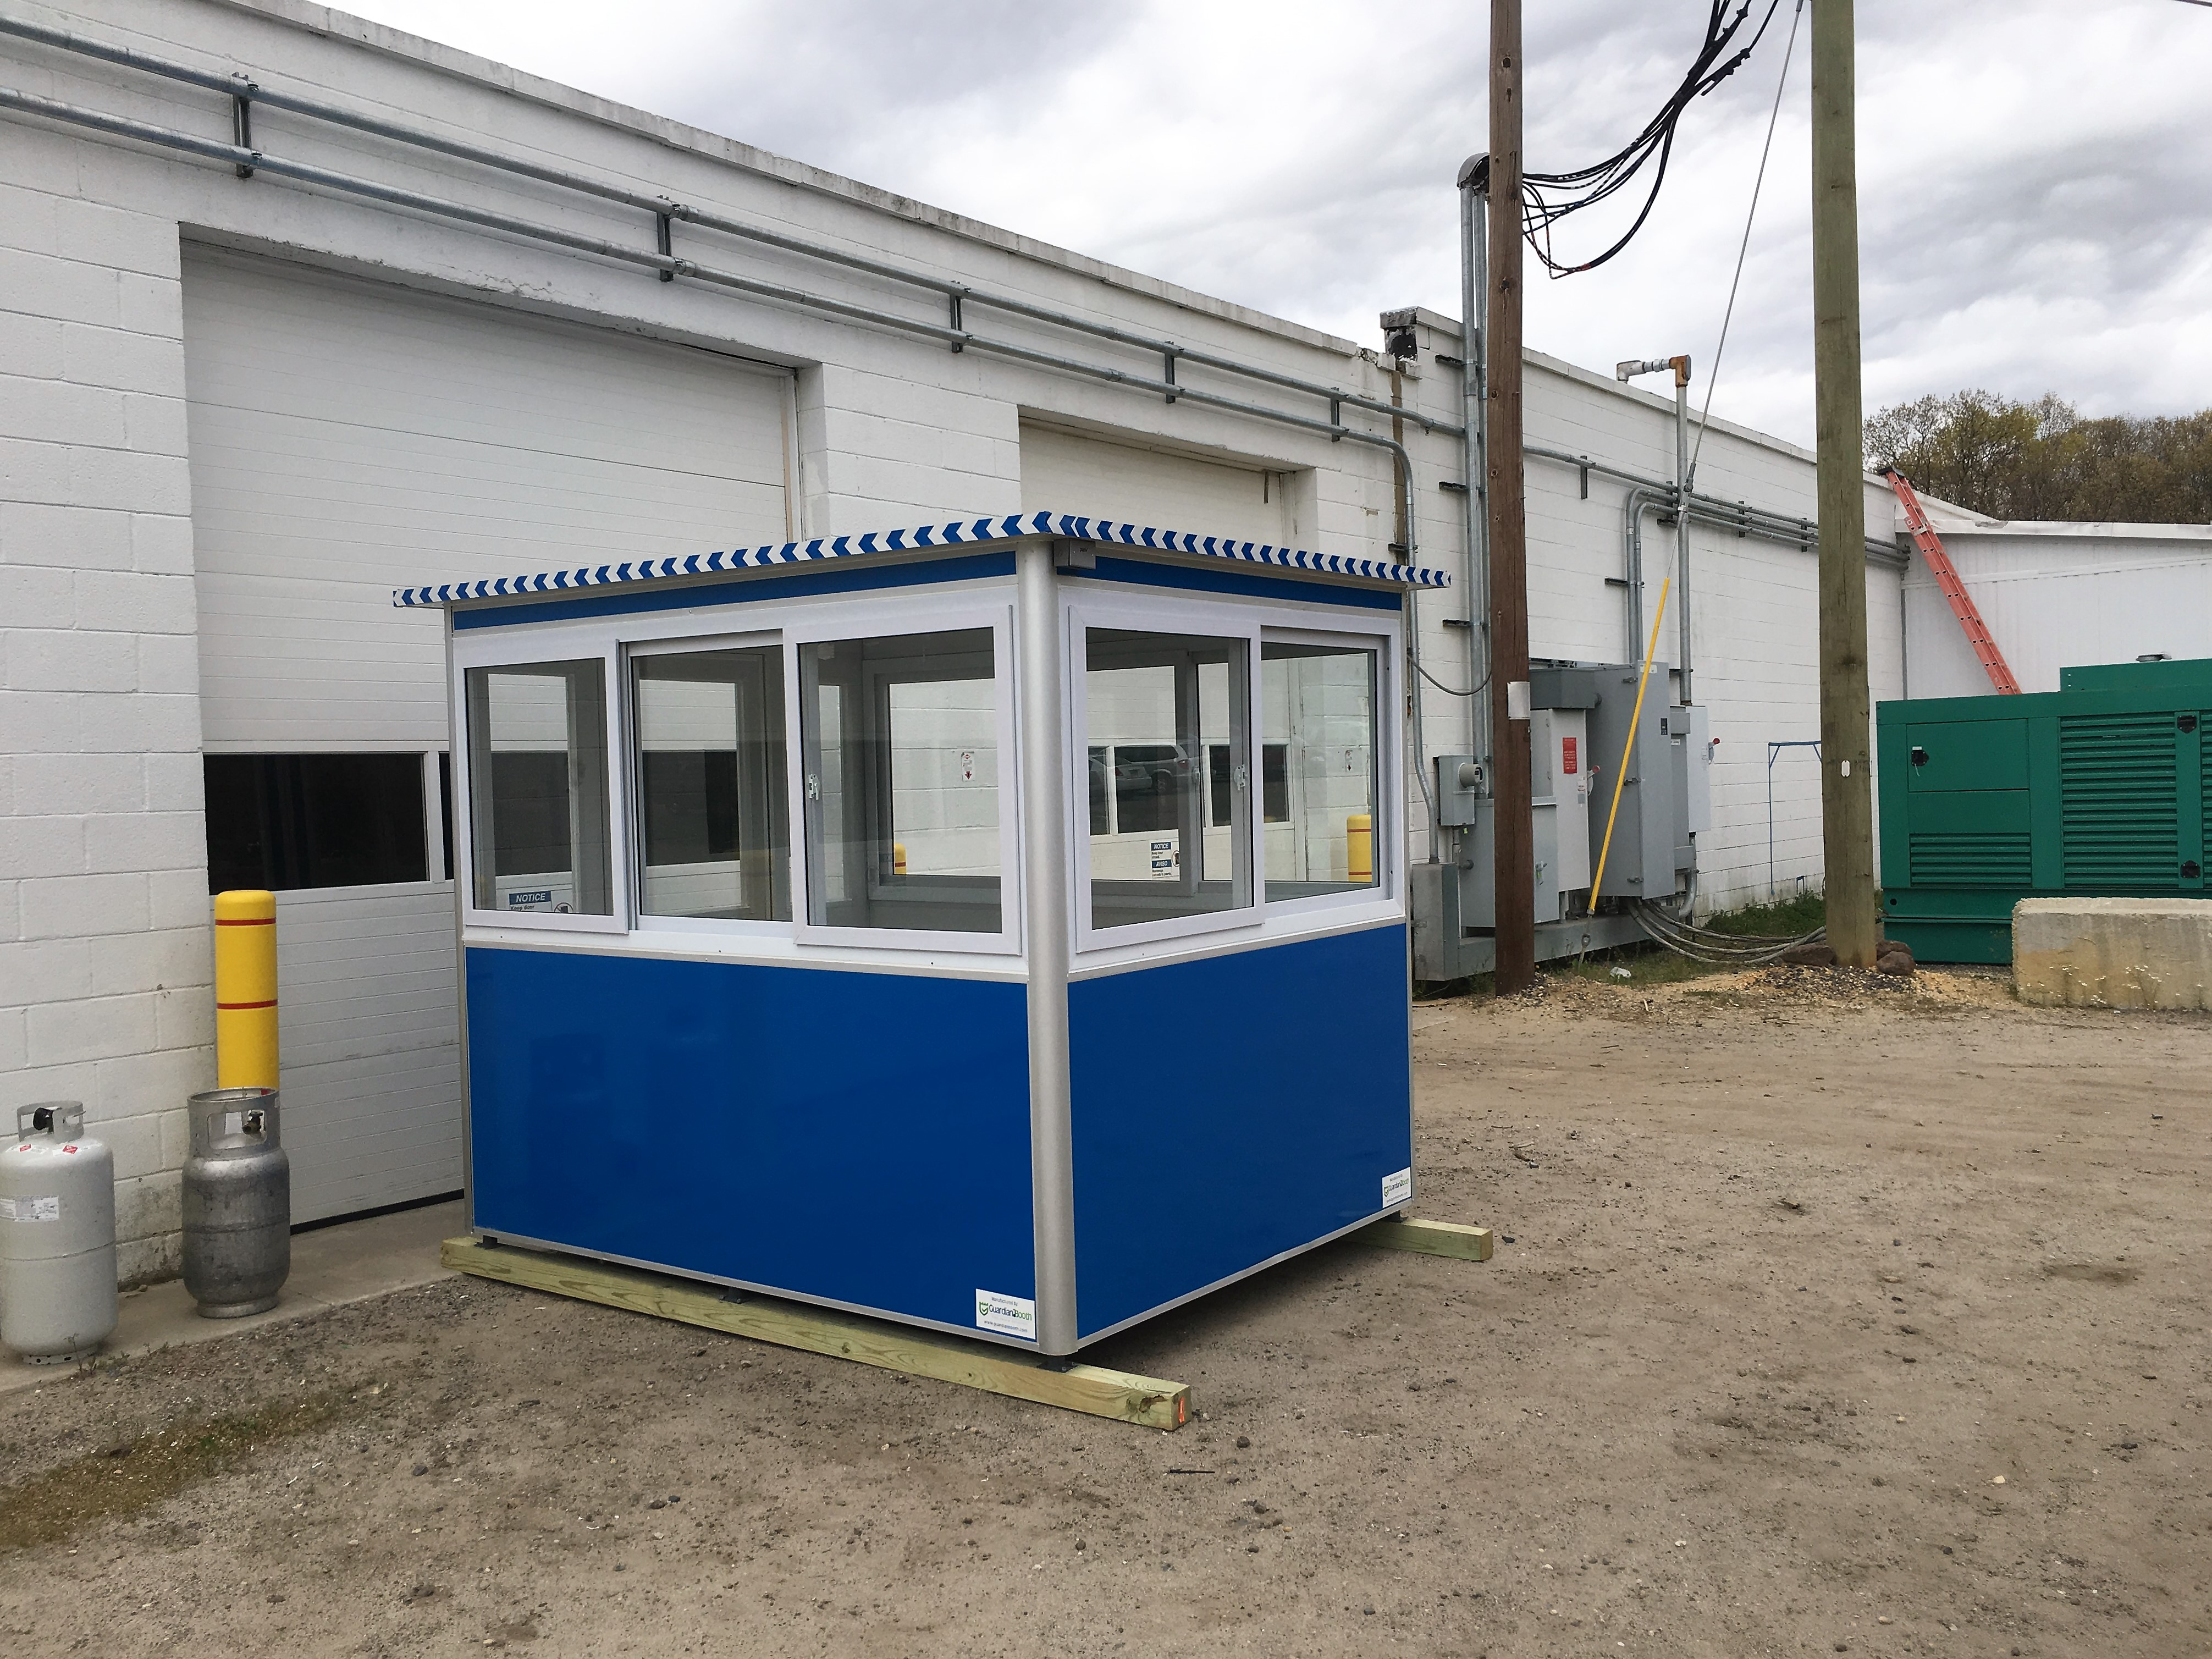 6x8 Front Entrance Booth in Newfield, NJ with Baseboard Heaters and Breaker Panel Box